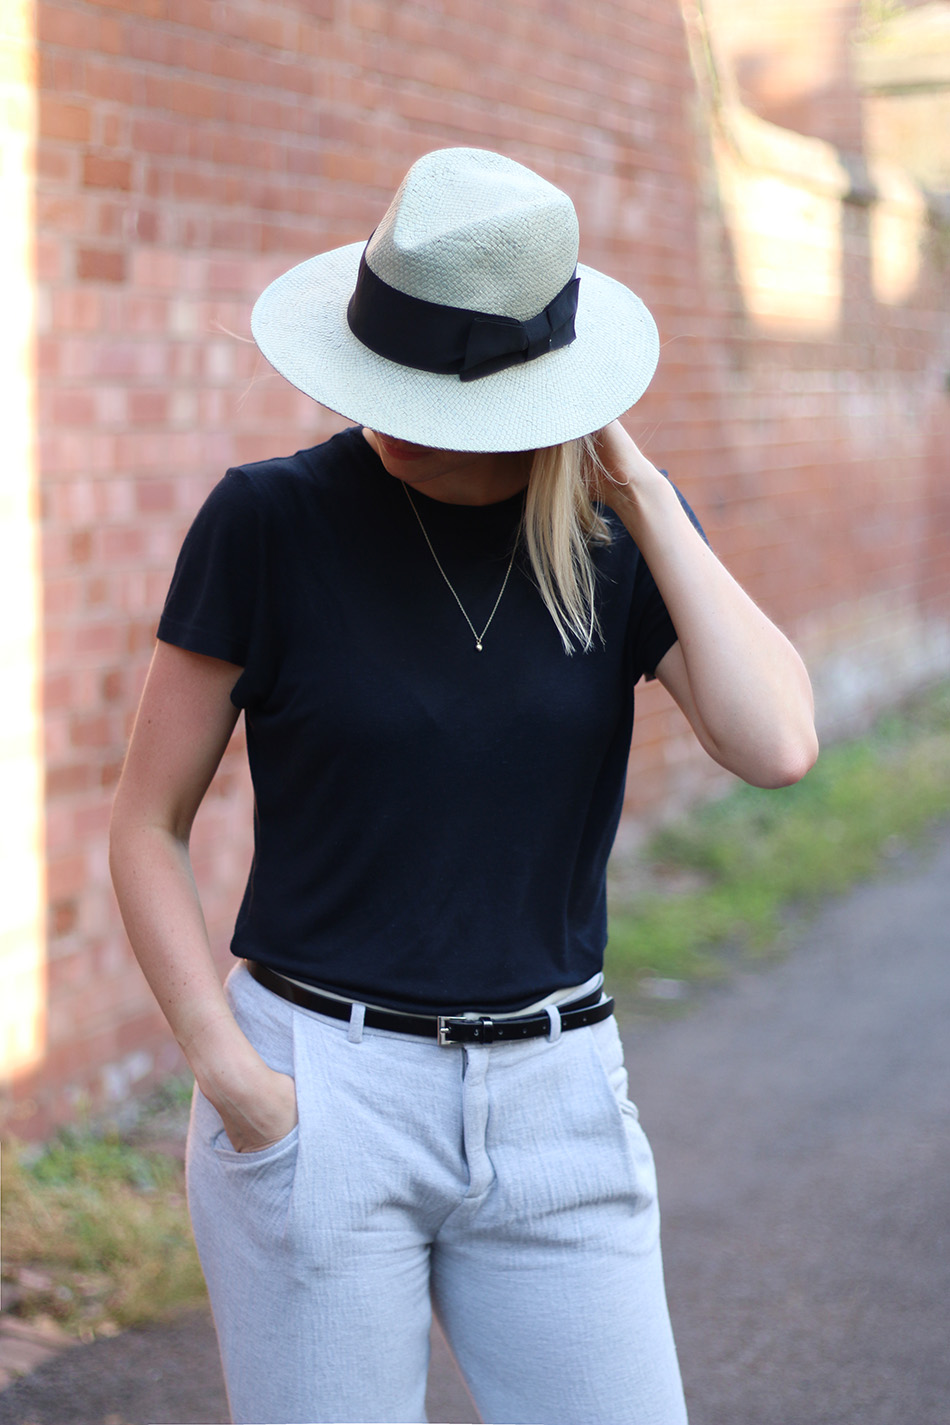 Fringe and Doll Back To basic casual hat look IMG_8090